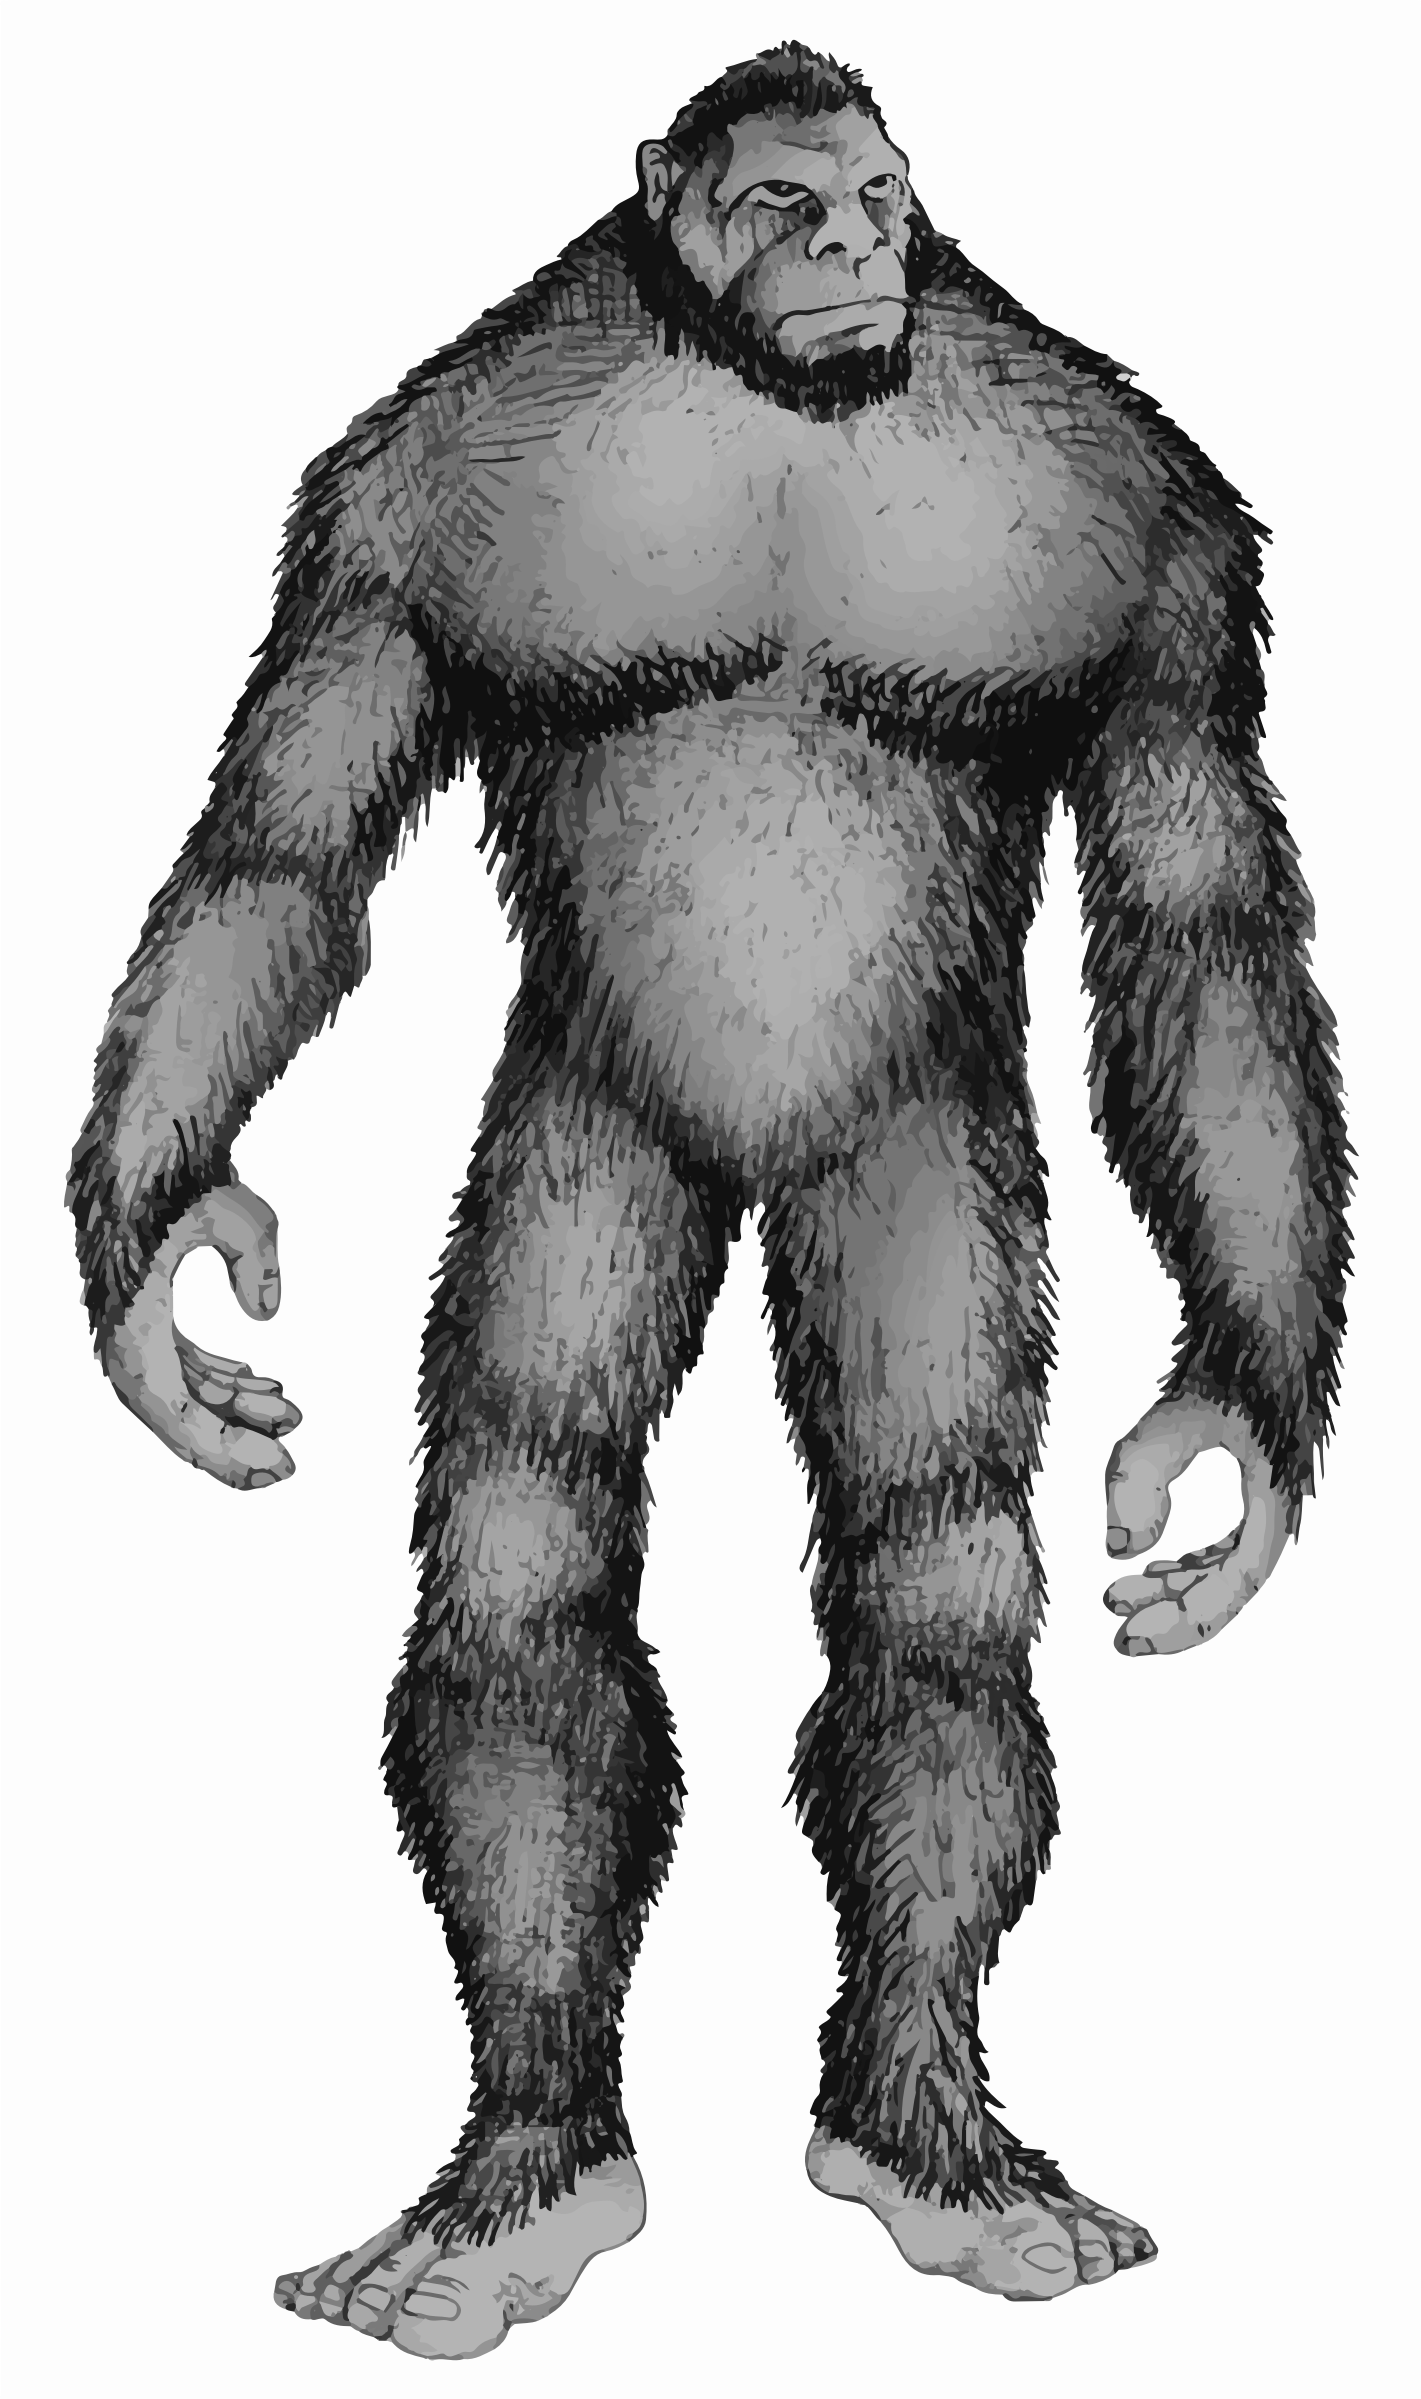 https://openclipart.org/image/2400px/svg_to_png/222913/Bigfoot.png